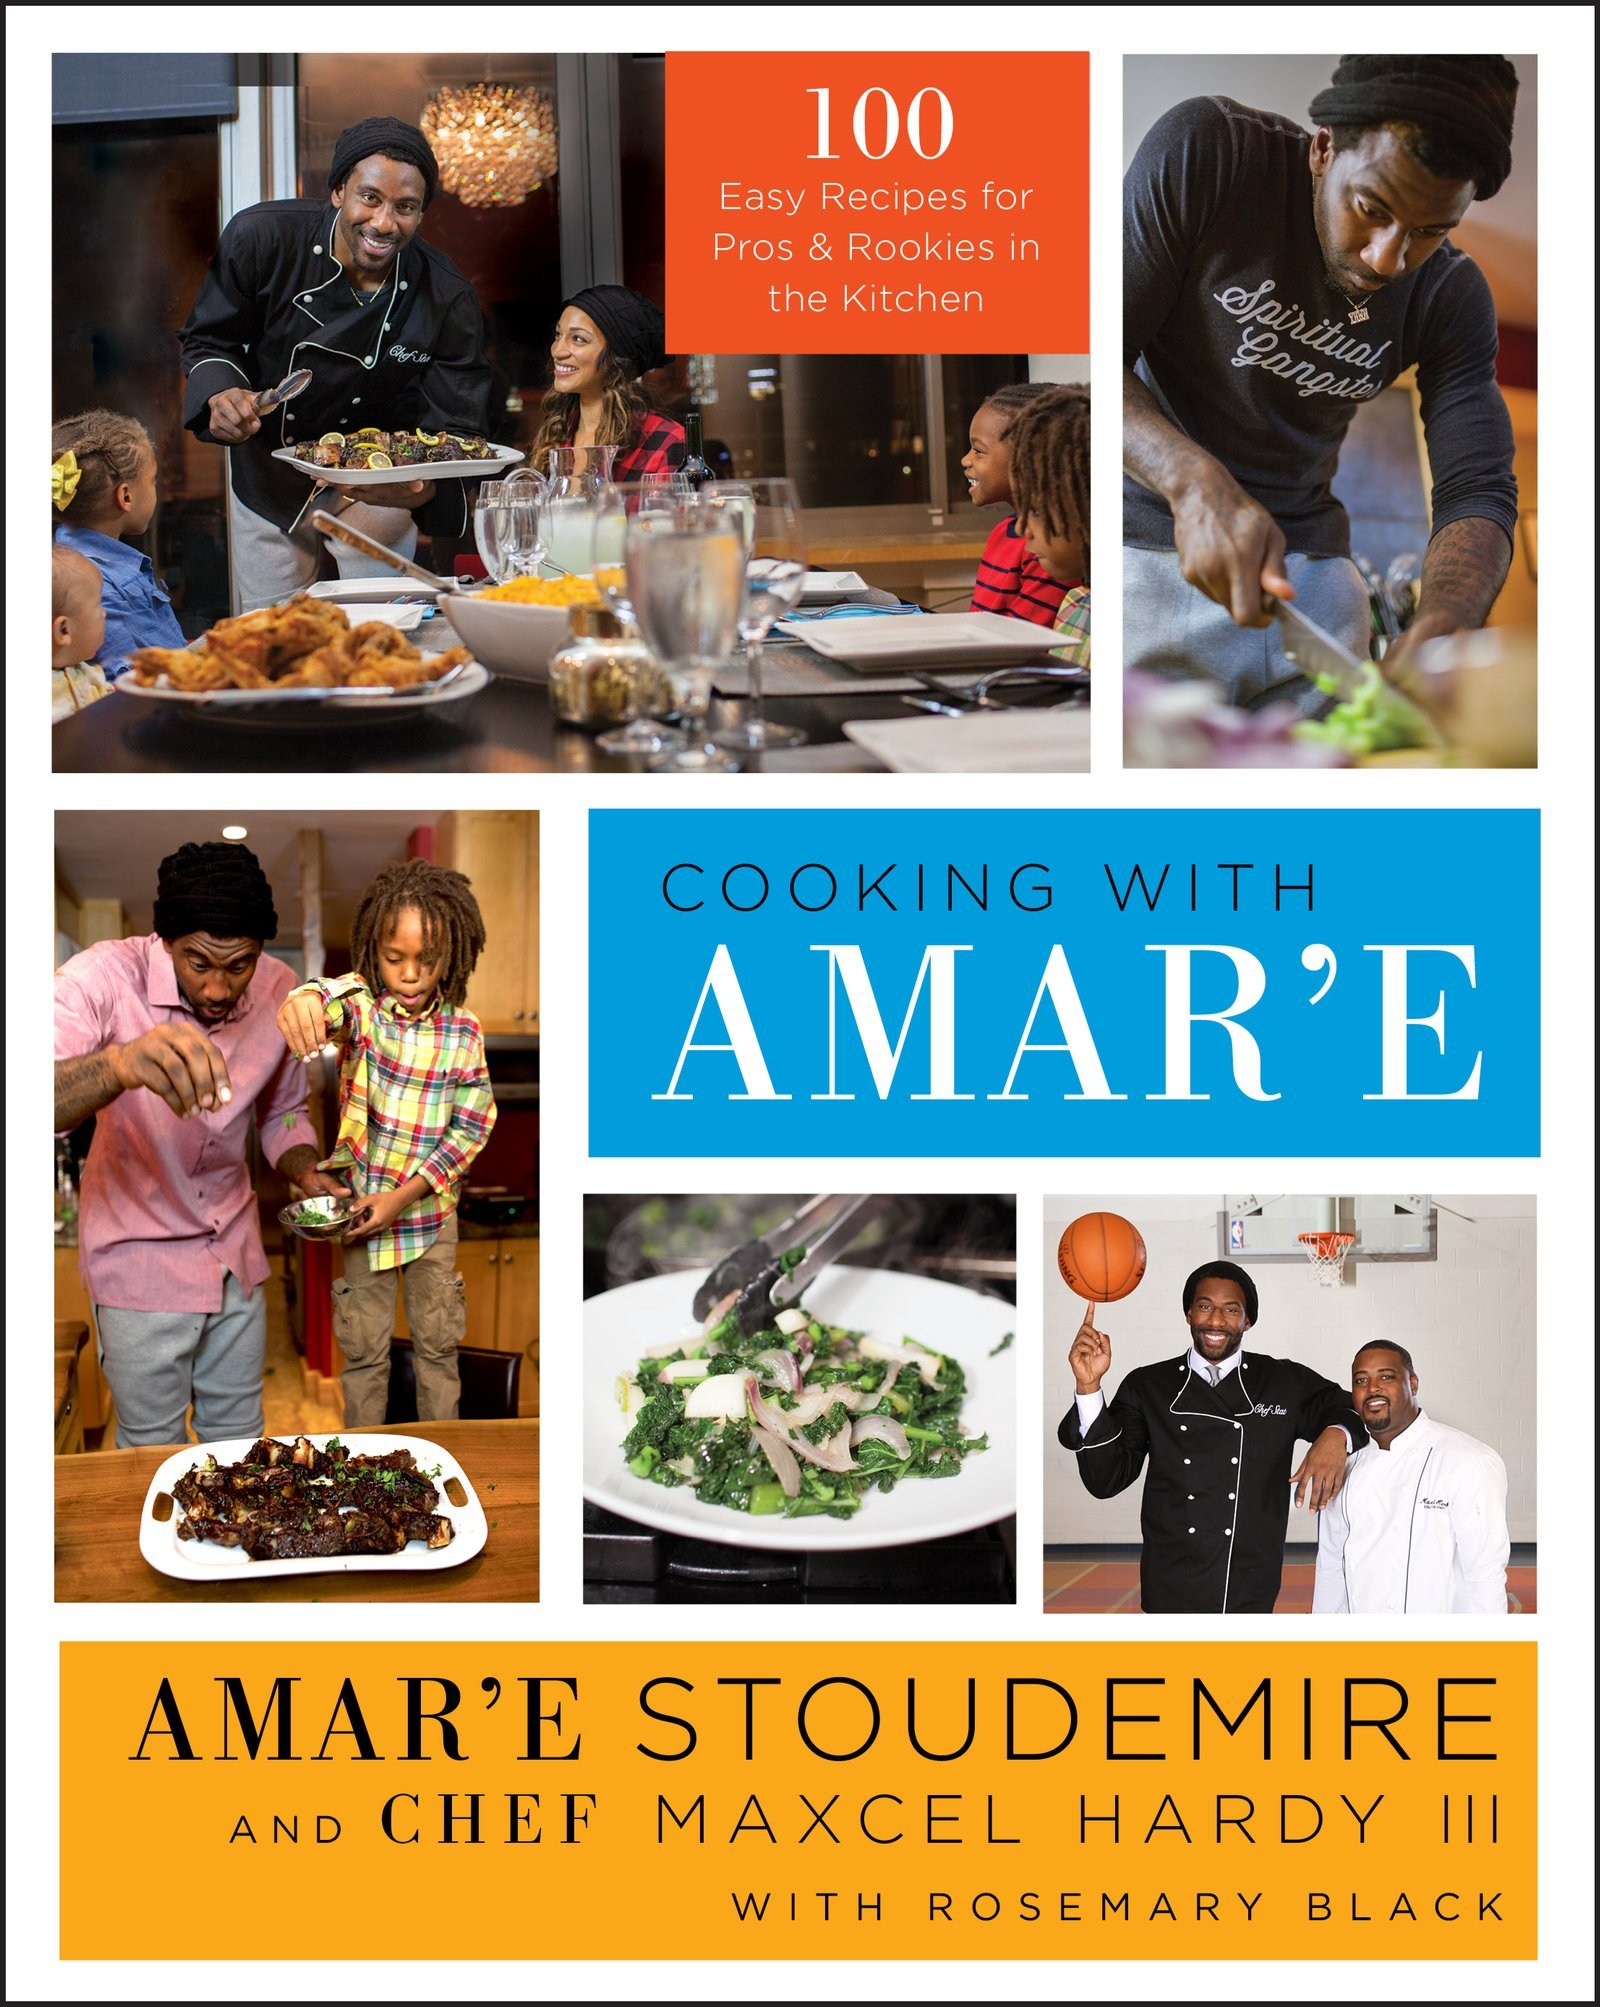 Amare-Stoudemire-cookbook-cooking-with-amare-max-hardy